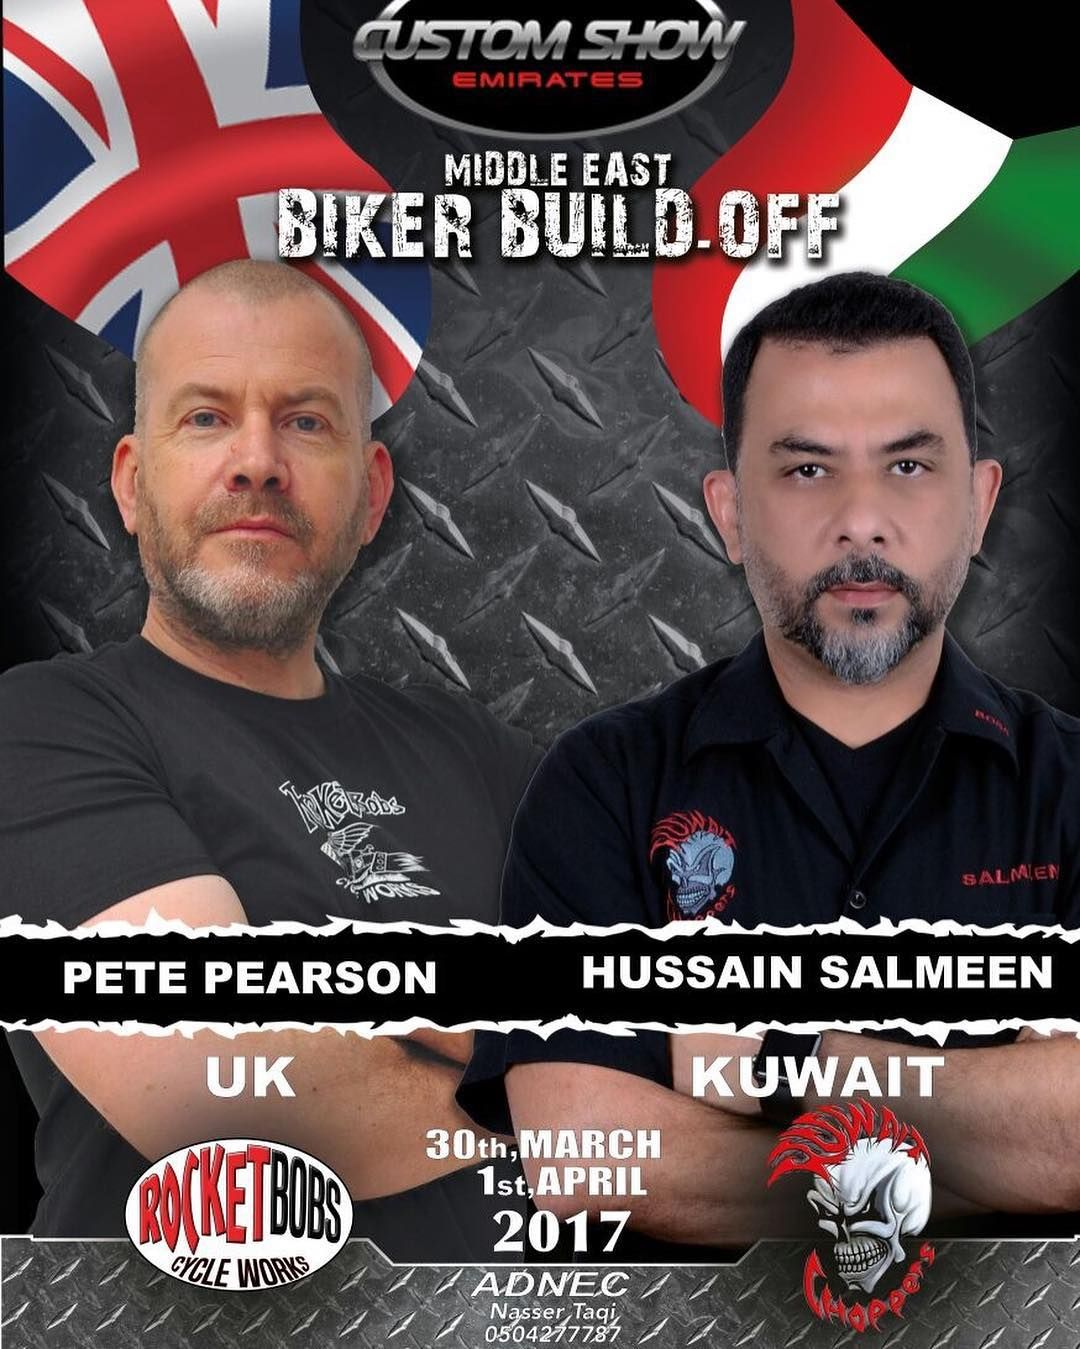 Coming up real soon  #customshowemirates #bikerbuildoff #kuwaitchoppers #emirates #bettergetitdone @customshowemirates @kwtchoppers #brothers